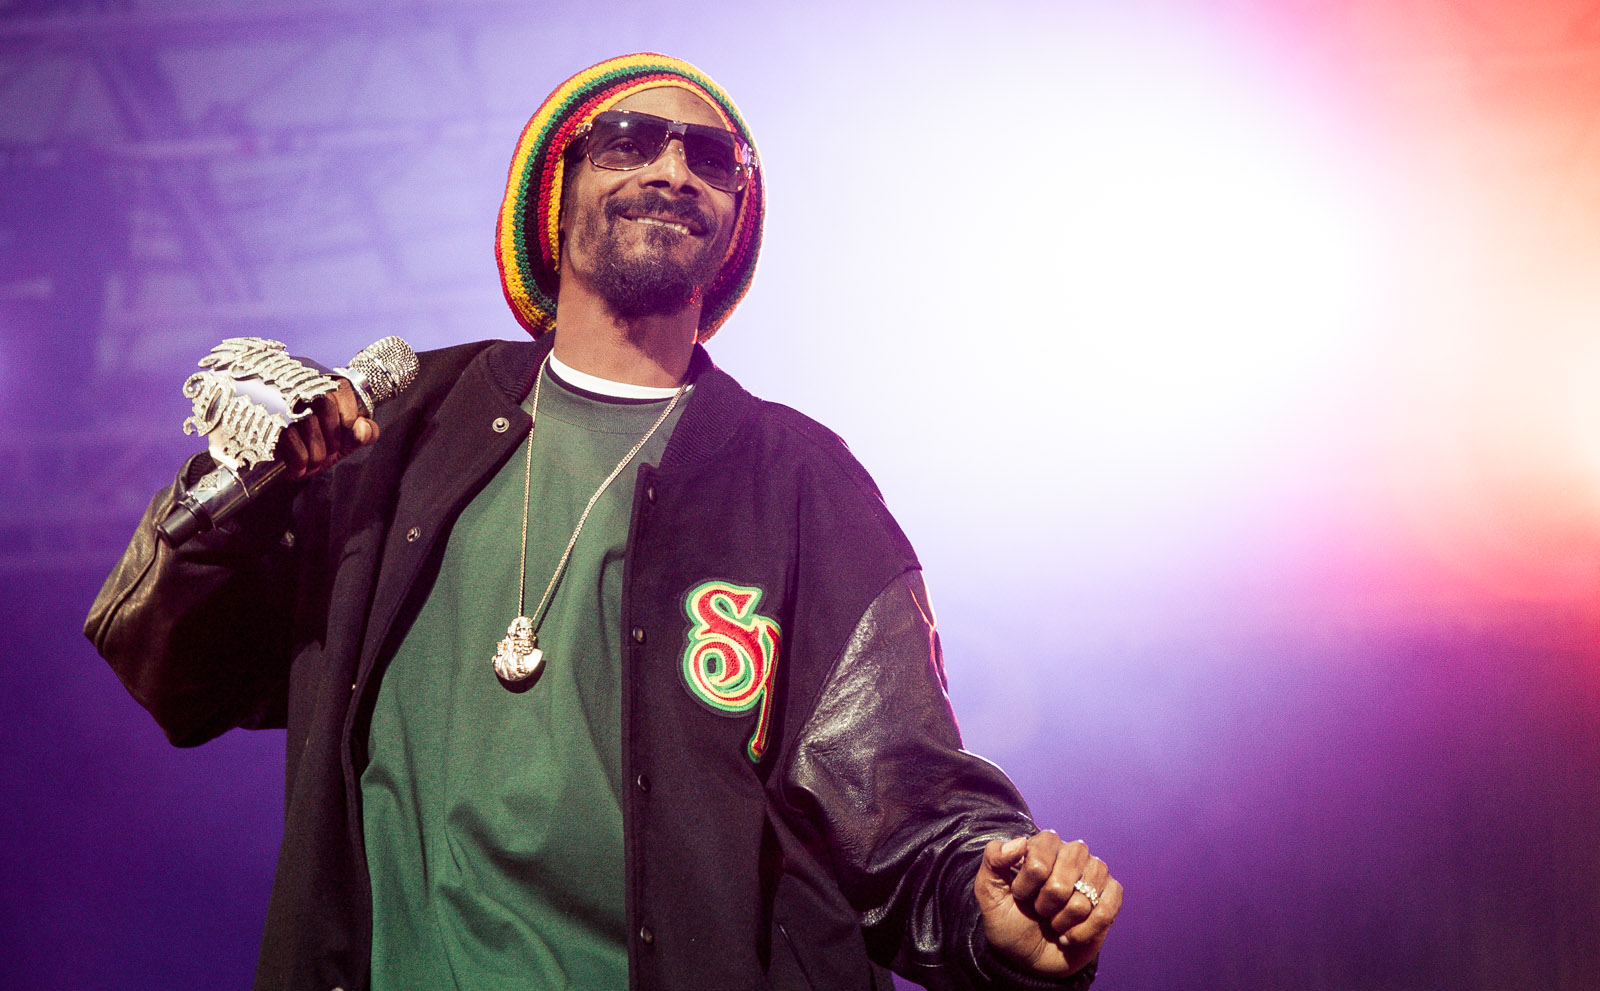 Why Can't Snoop Dogg Have a Gospel Album?